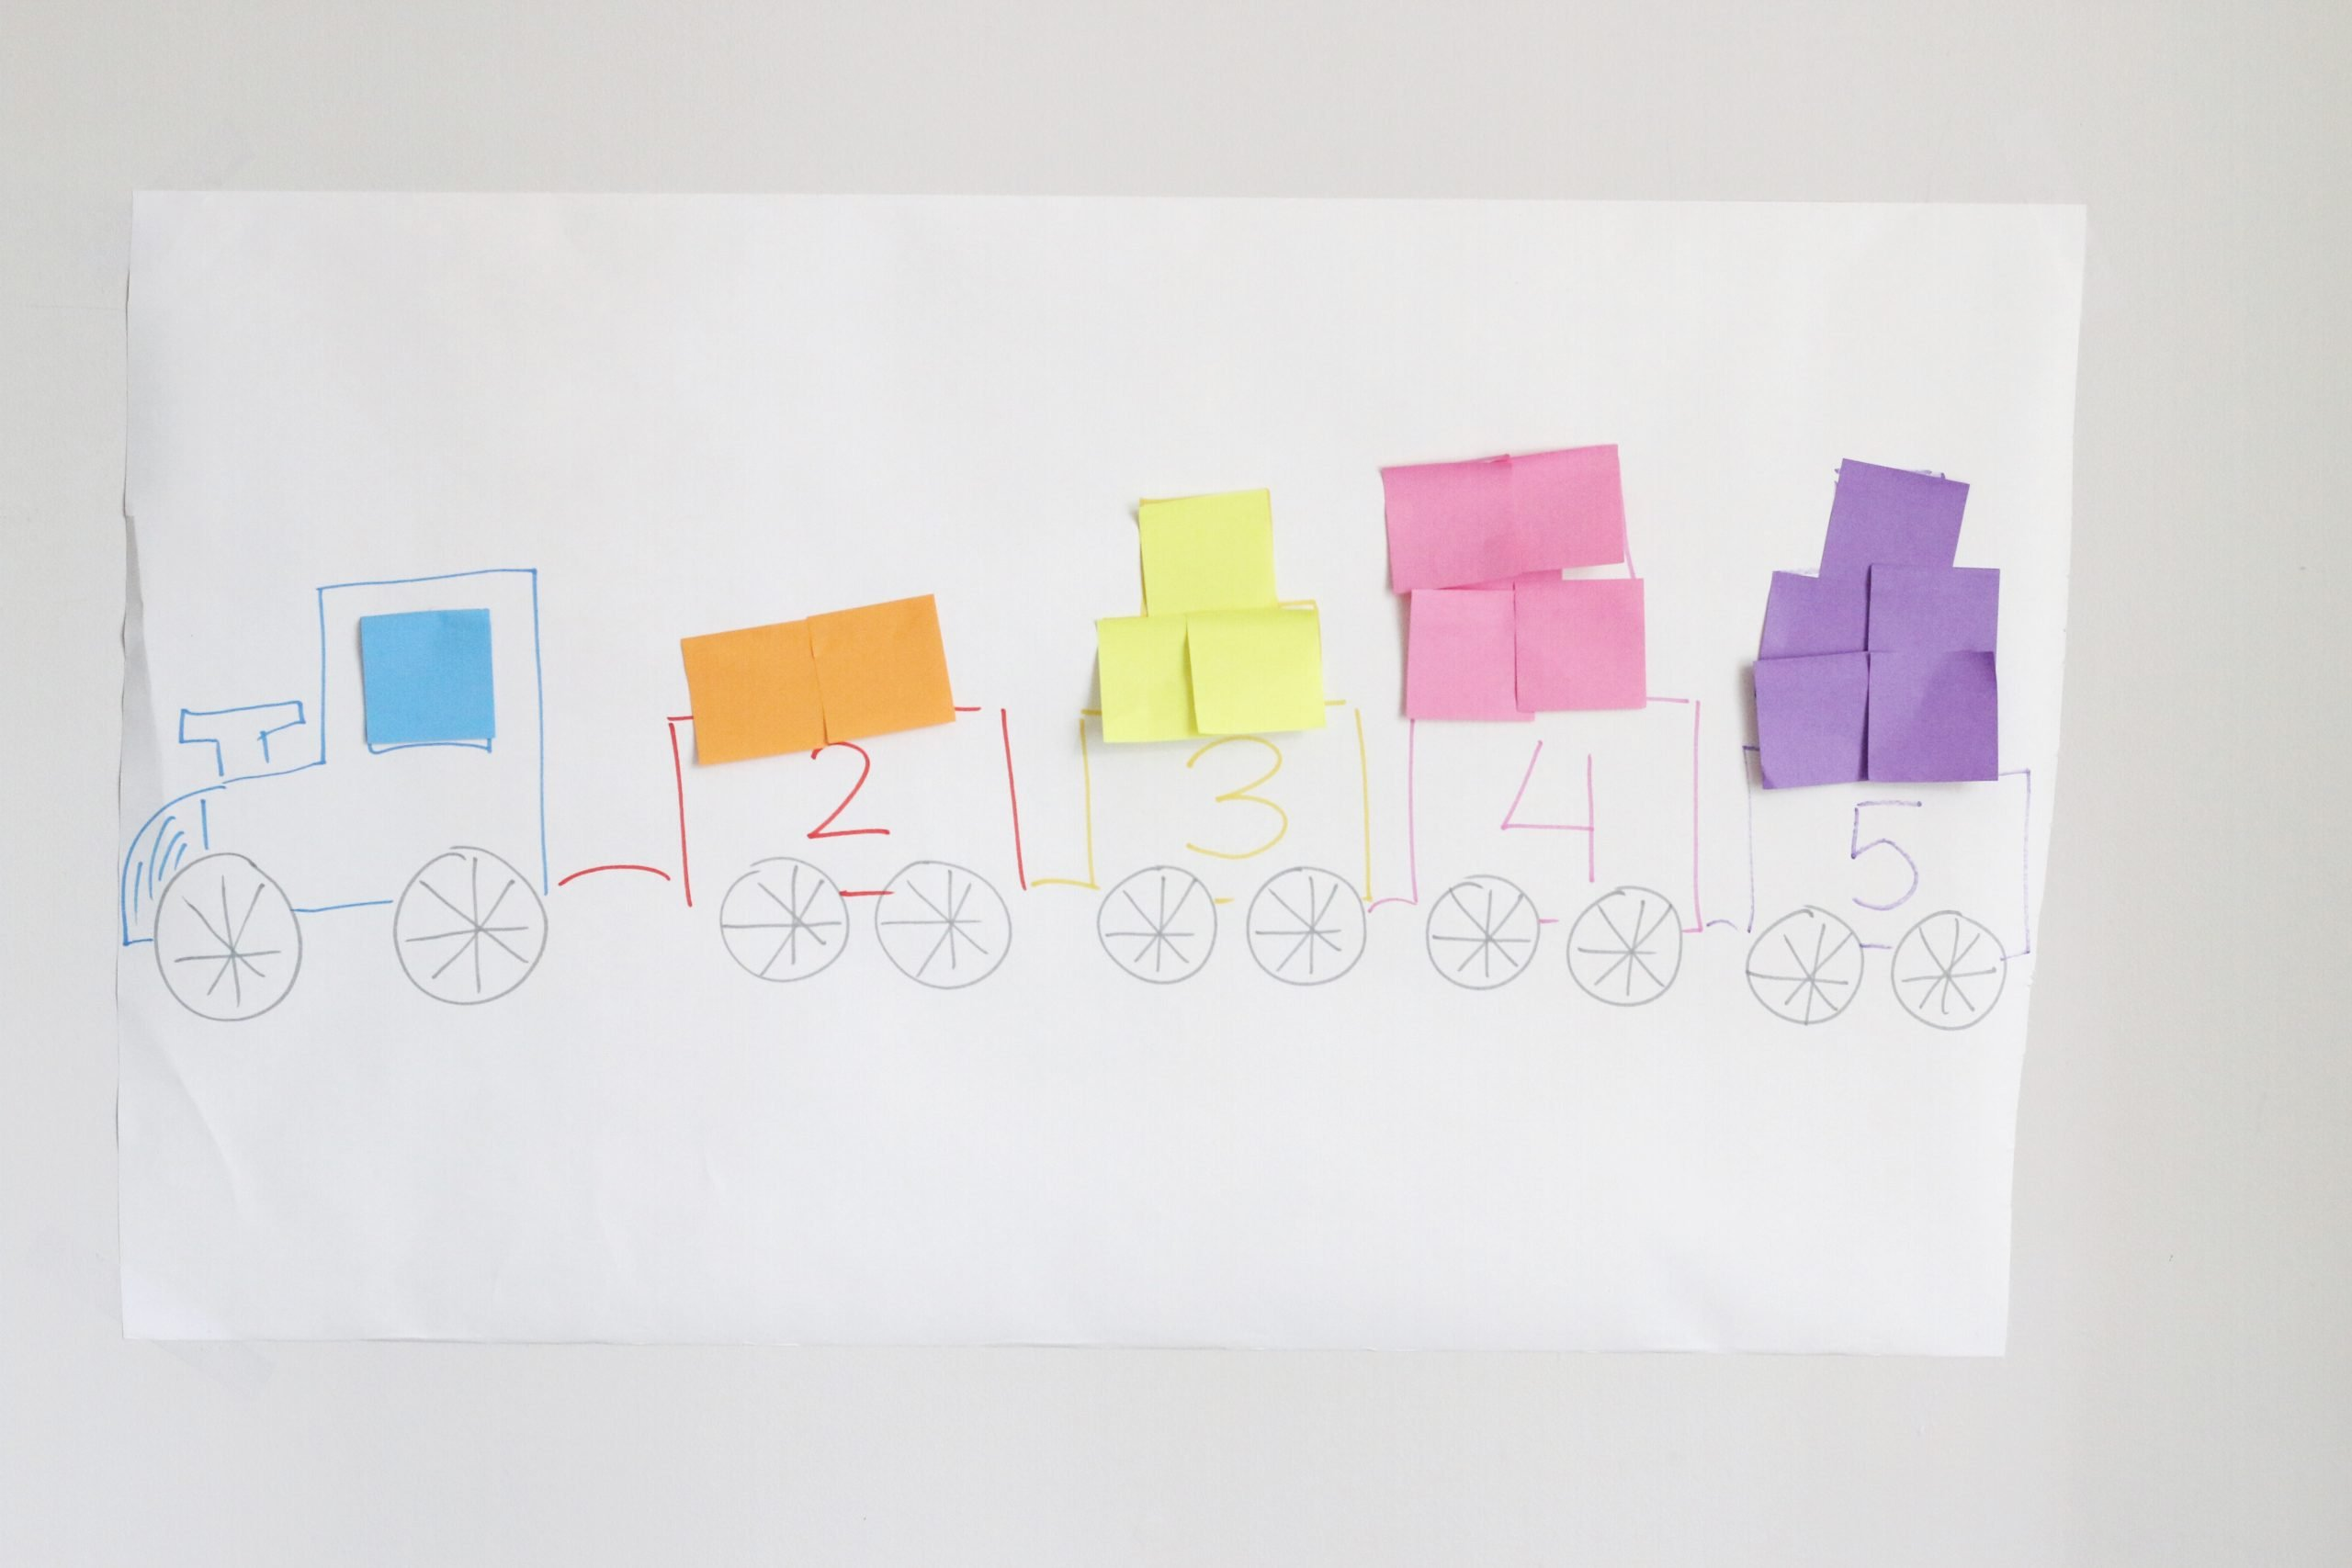 Counting Train Using Post-It Notes